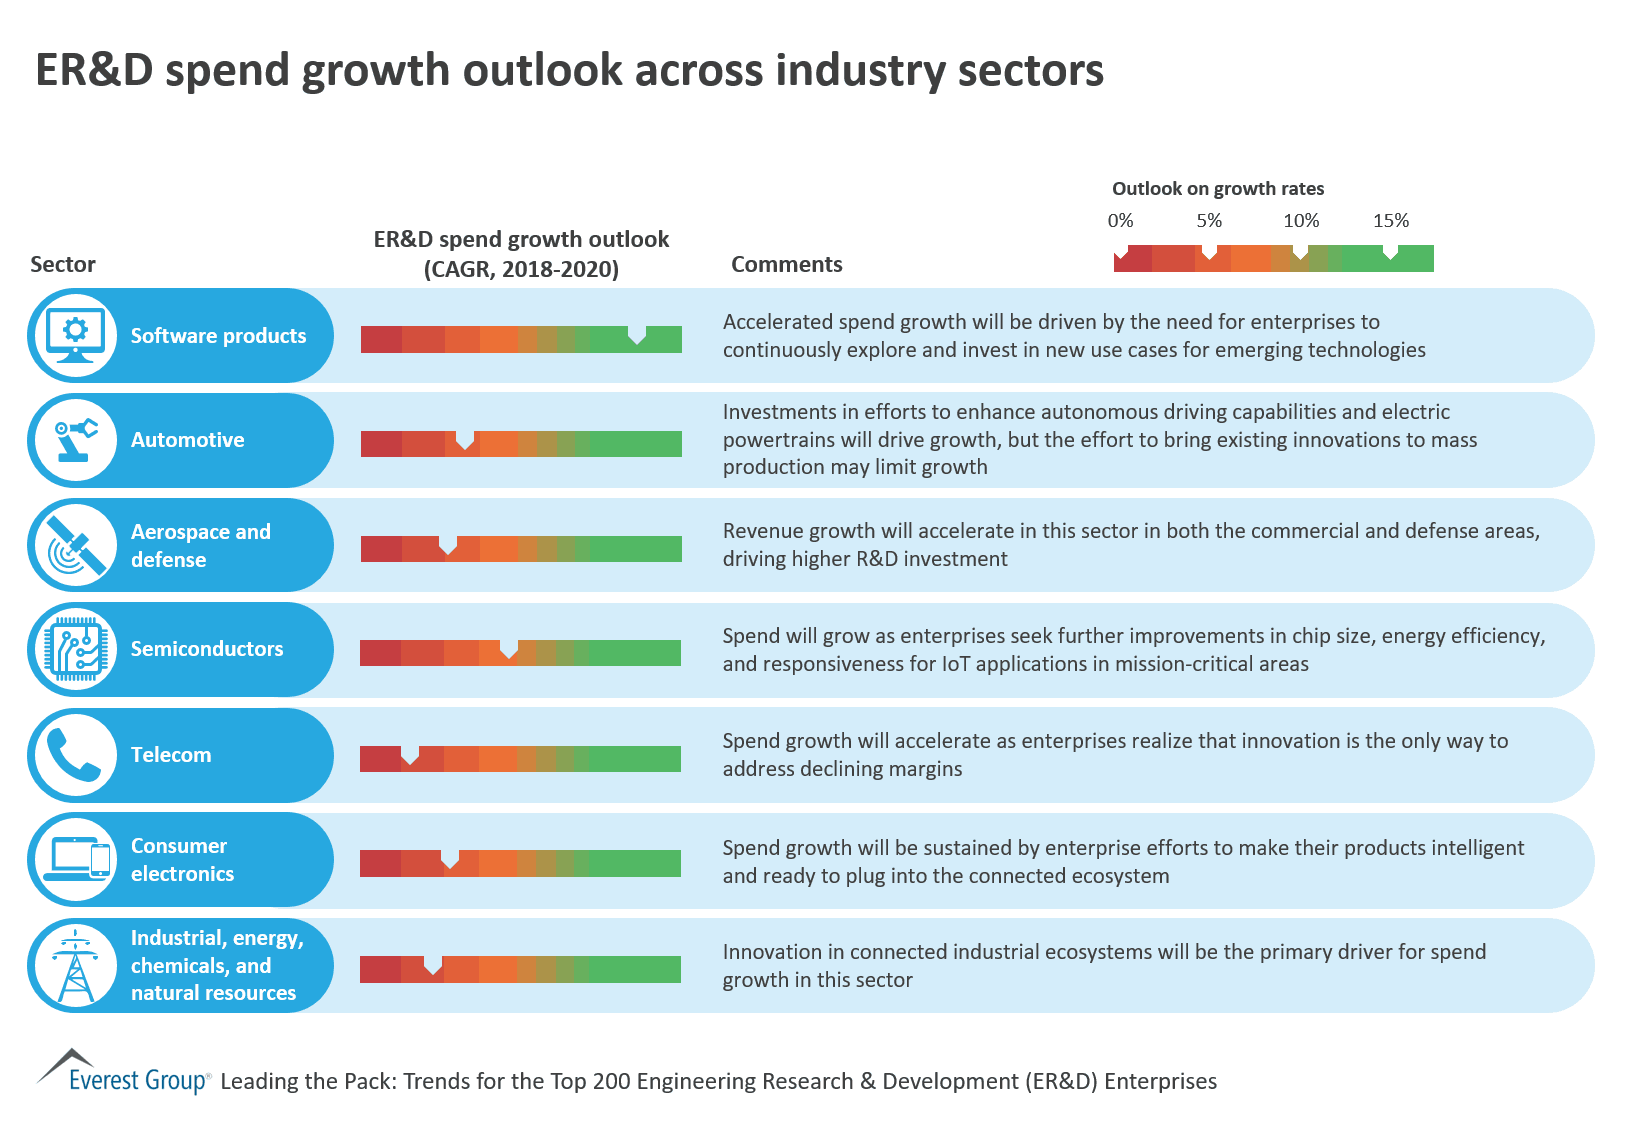 ER&D spend growth outlook across industry sectors